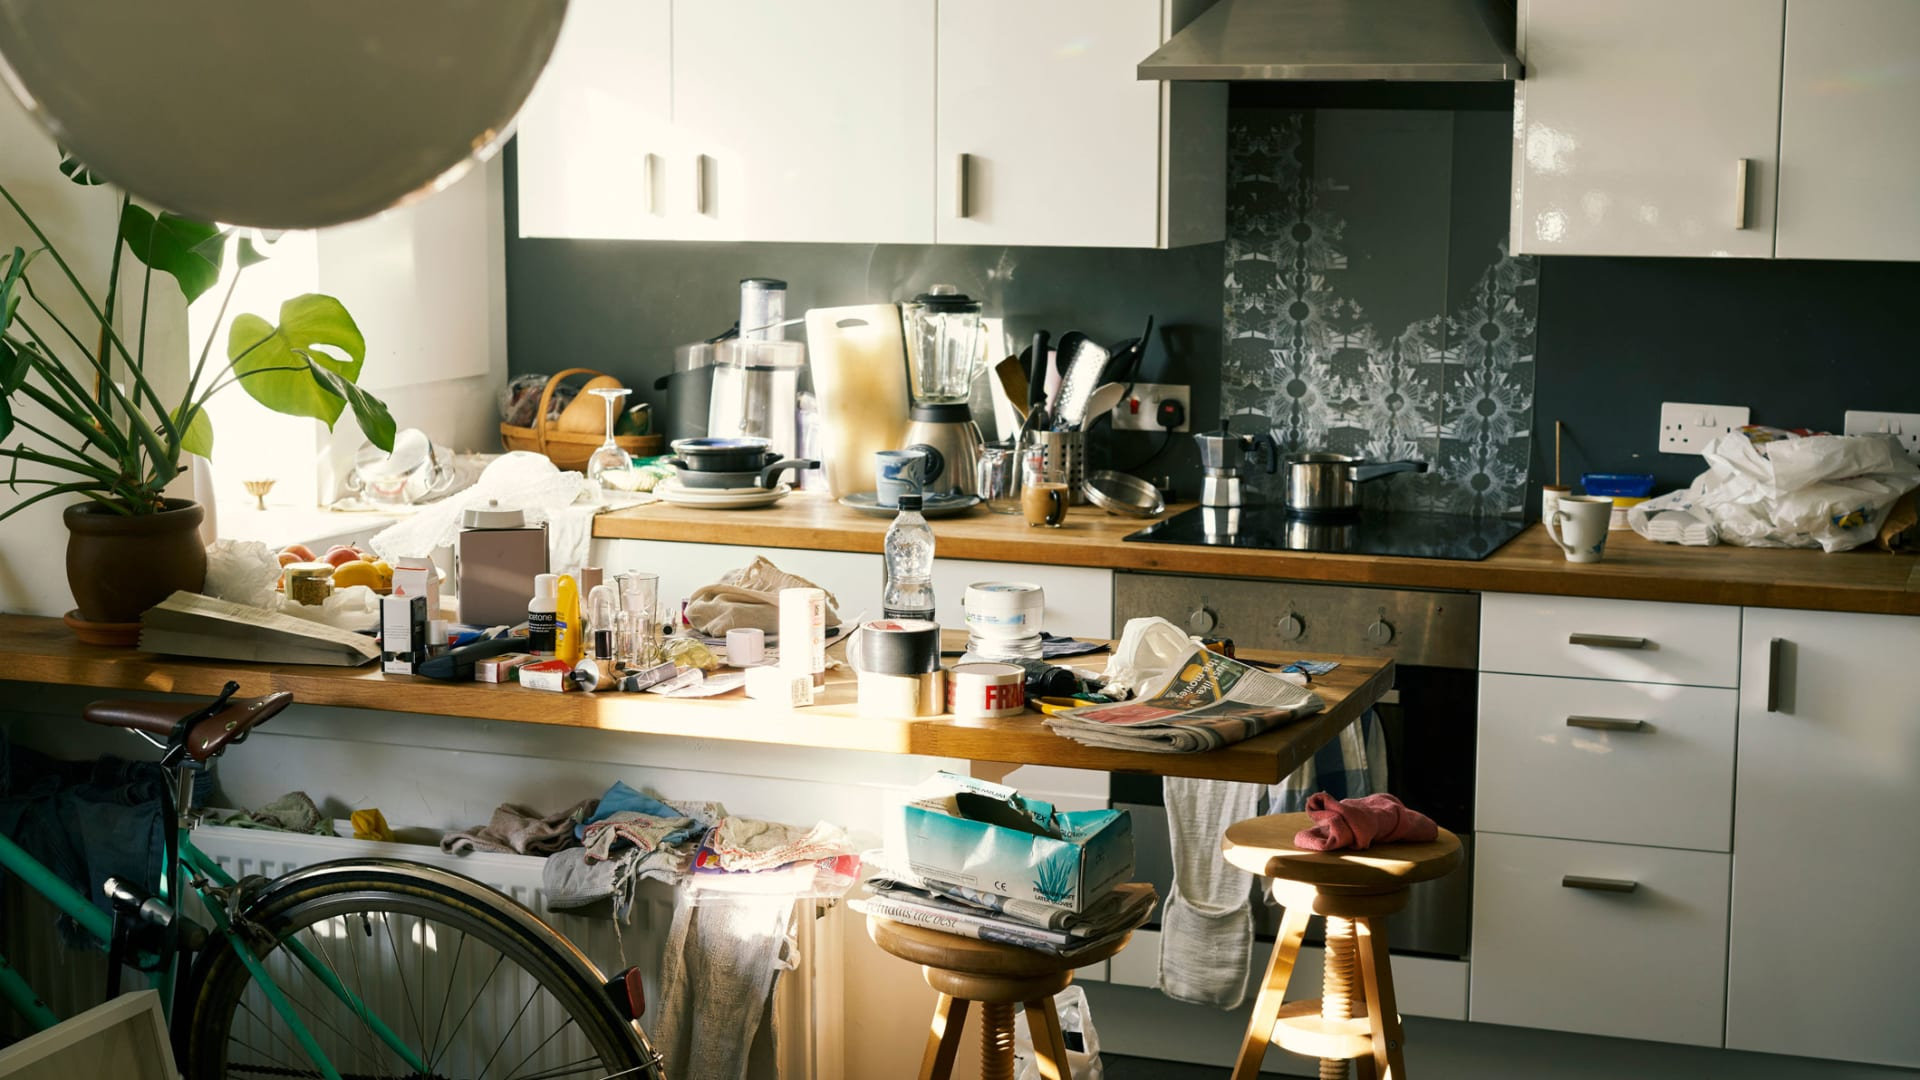 The 5 Types of Clutter That Are Destroying Your Peace of Mind